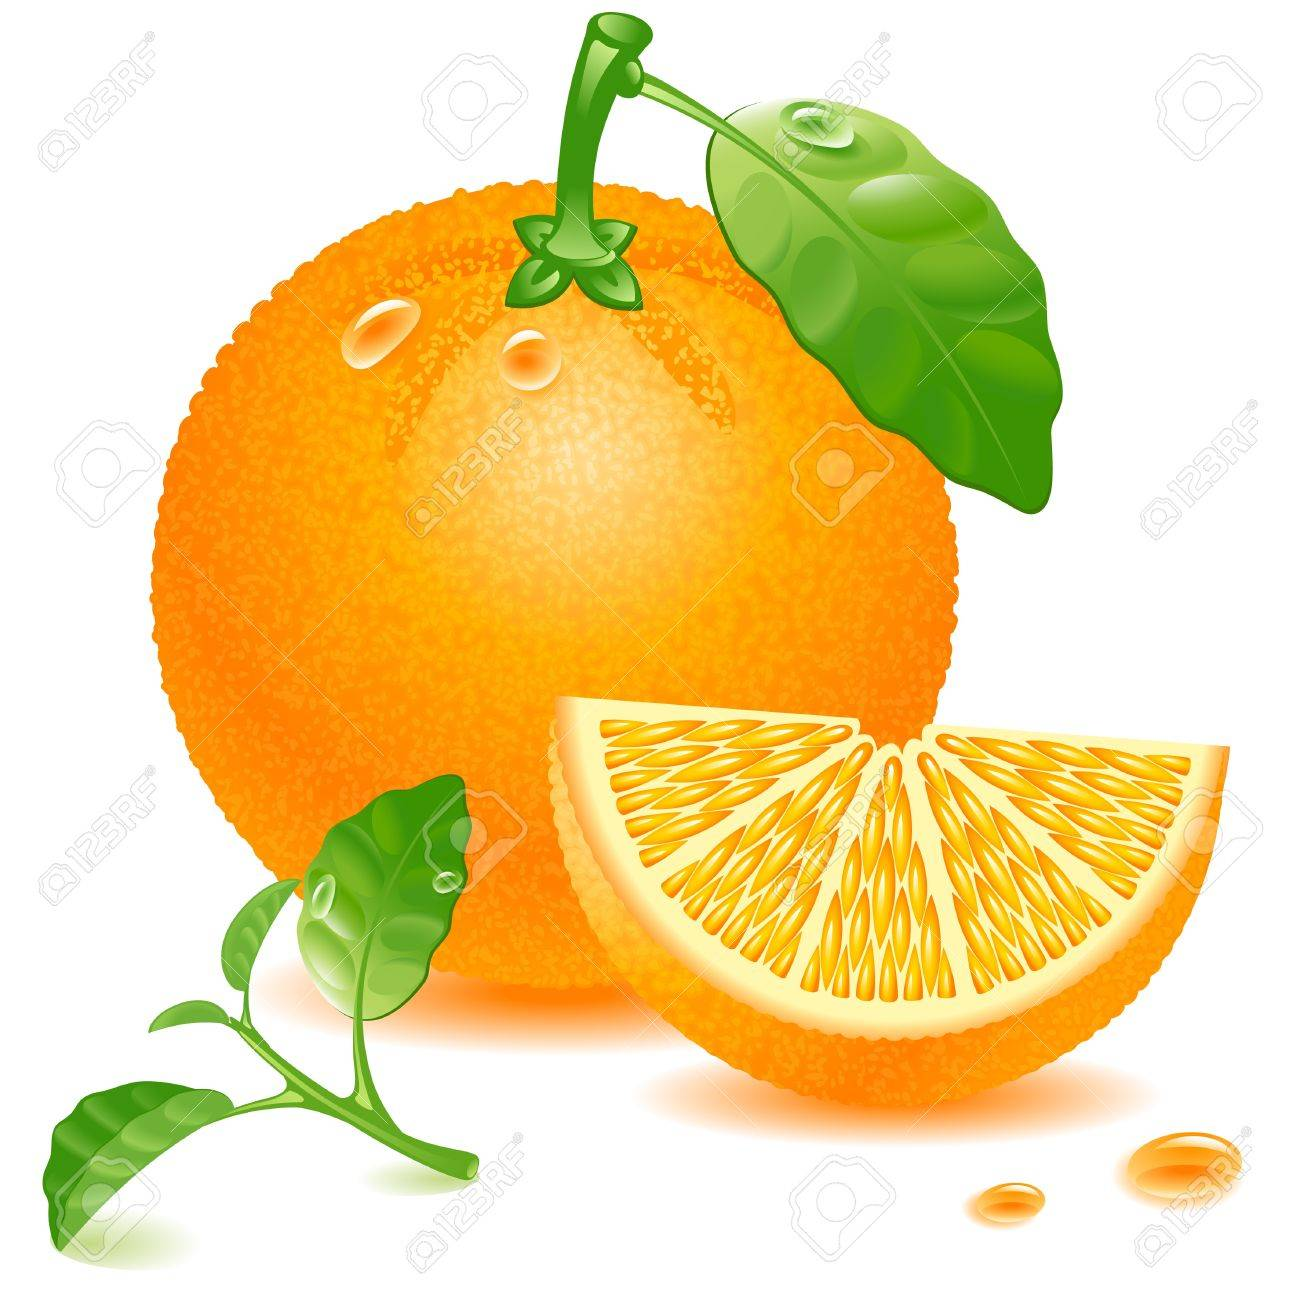 ripe orange with leaf and succulent slice isolated on white background Stock Vector - 10194977